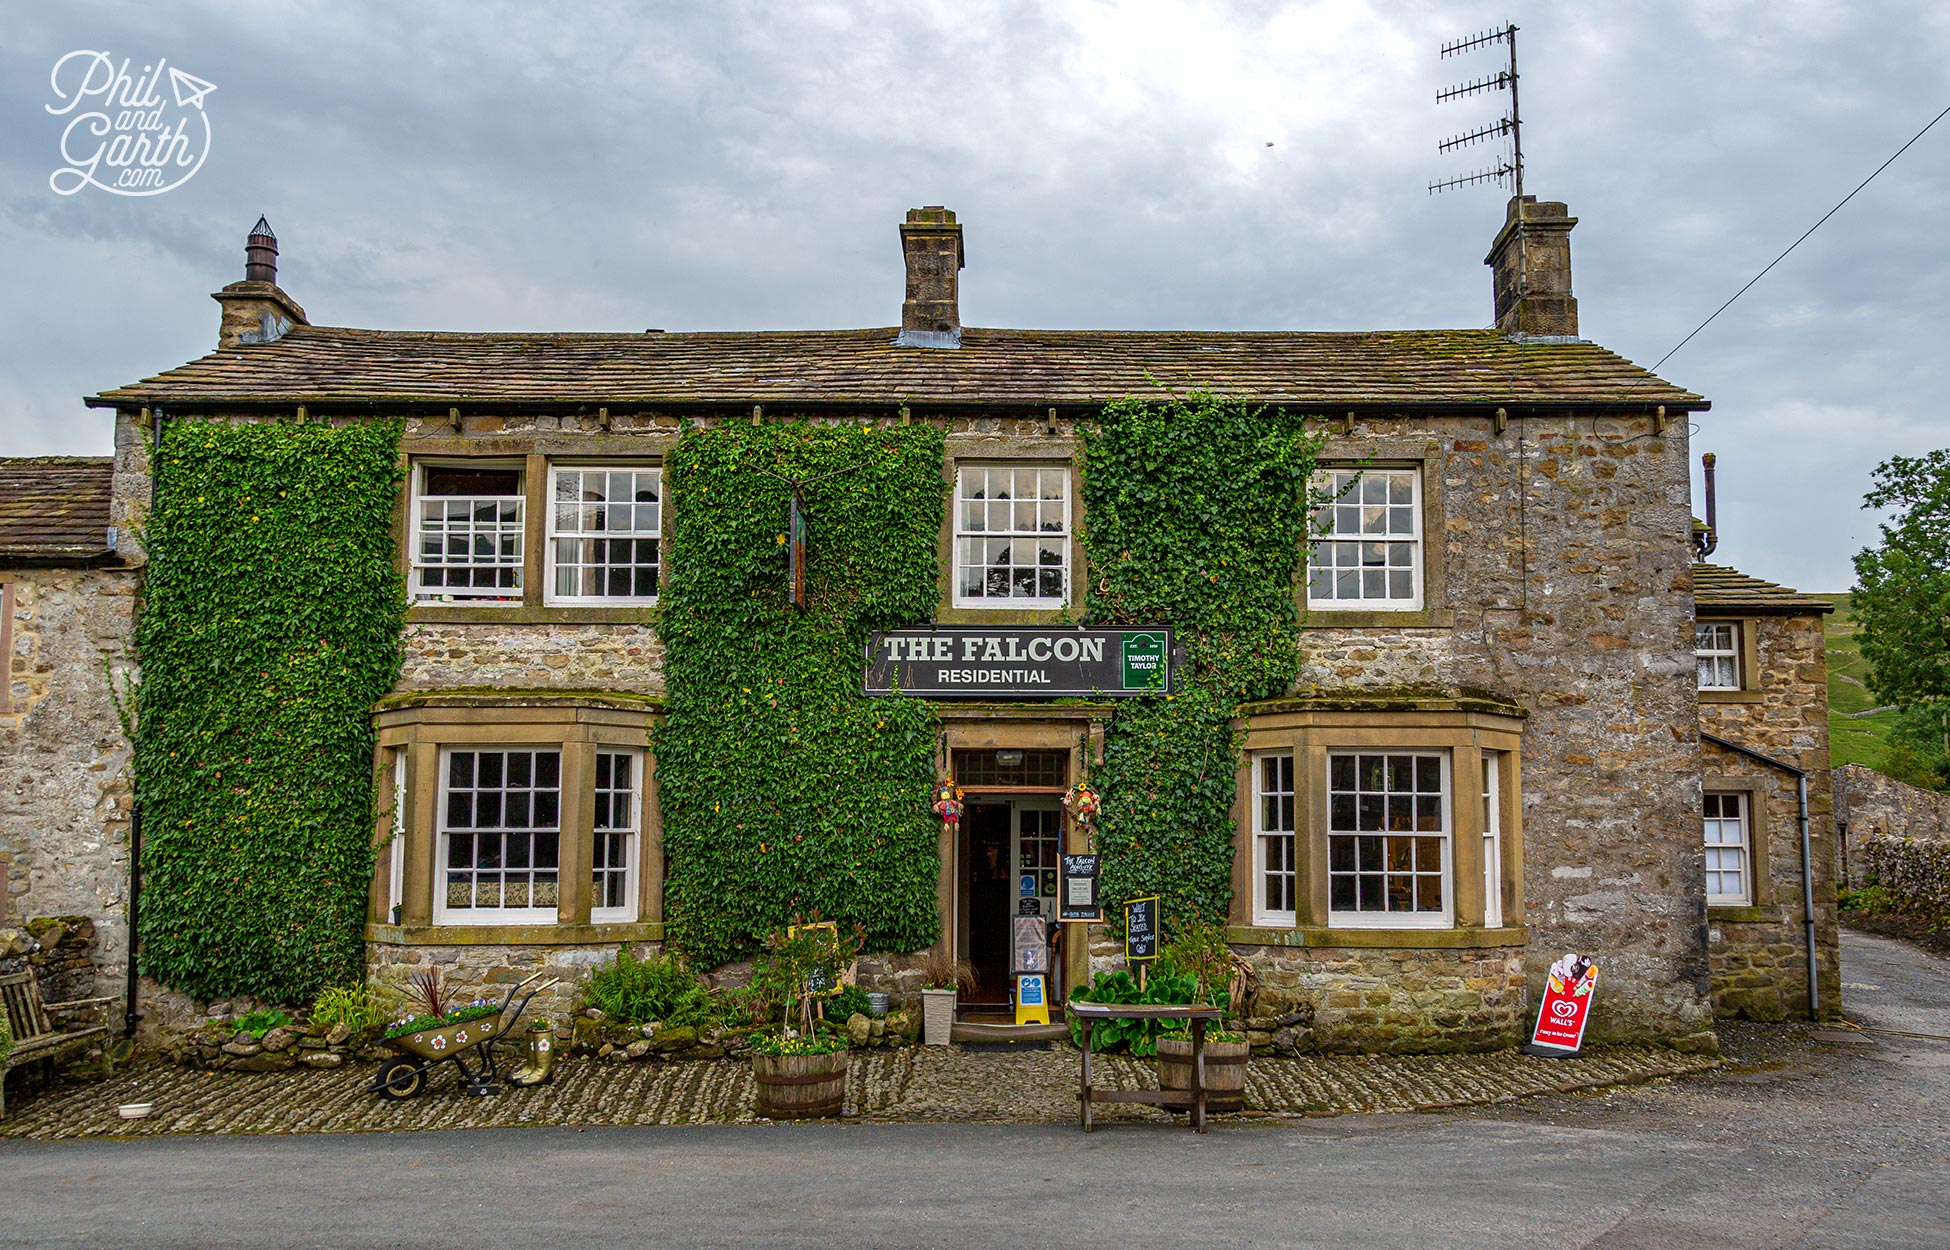 The Falcon pub in Arncliffe was the original Woolpack pub in Emmerdale